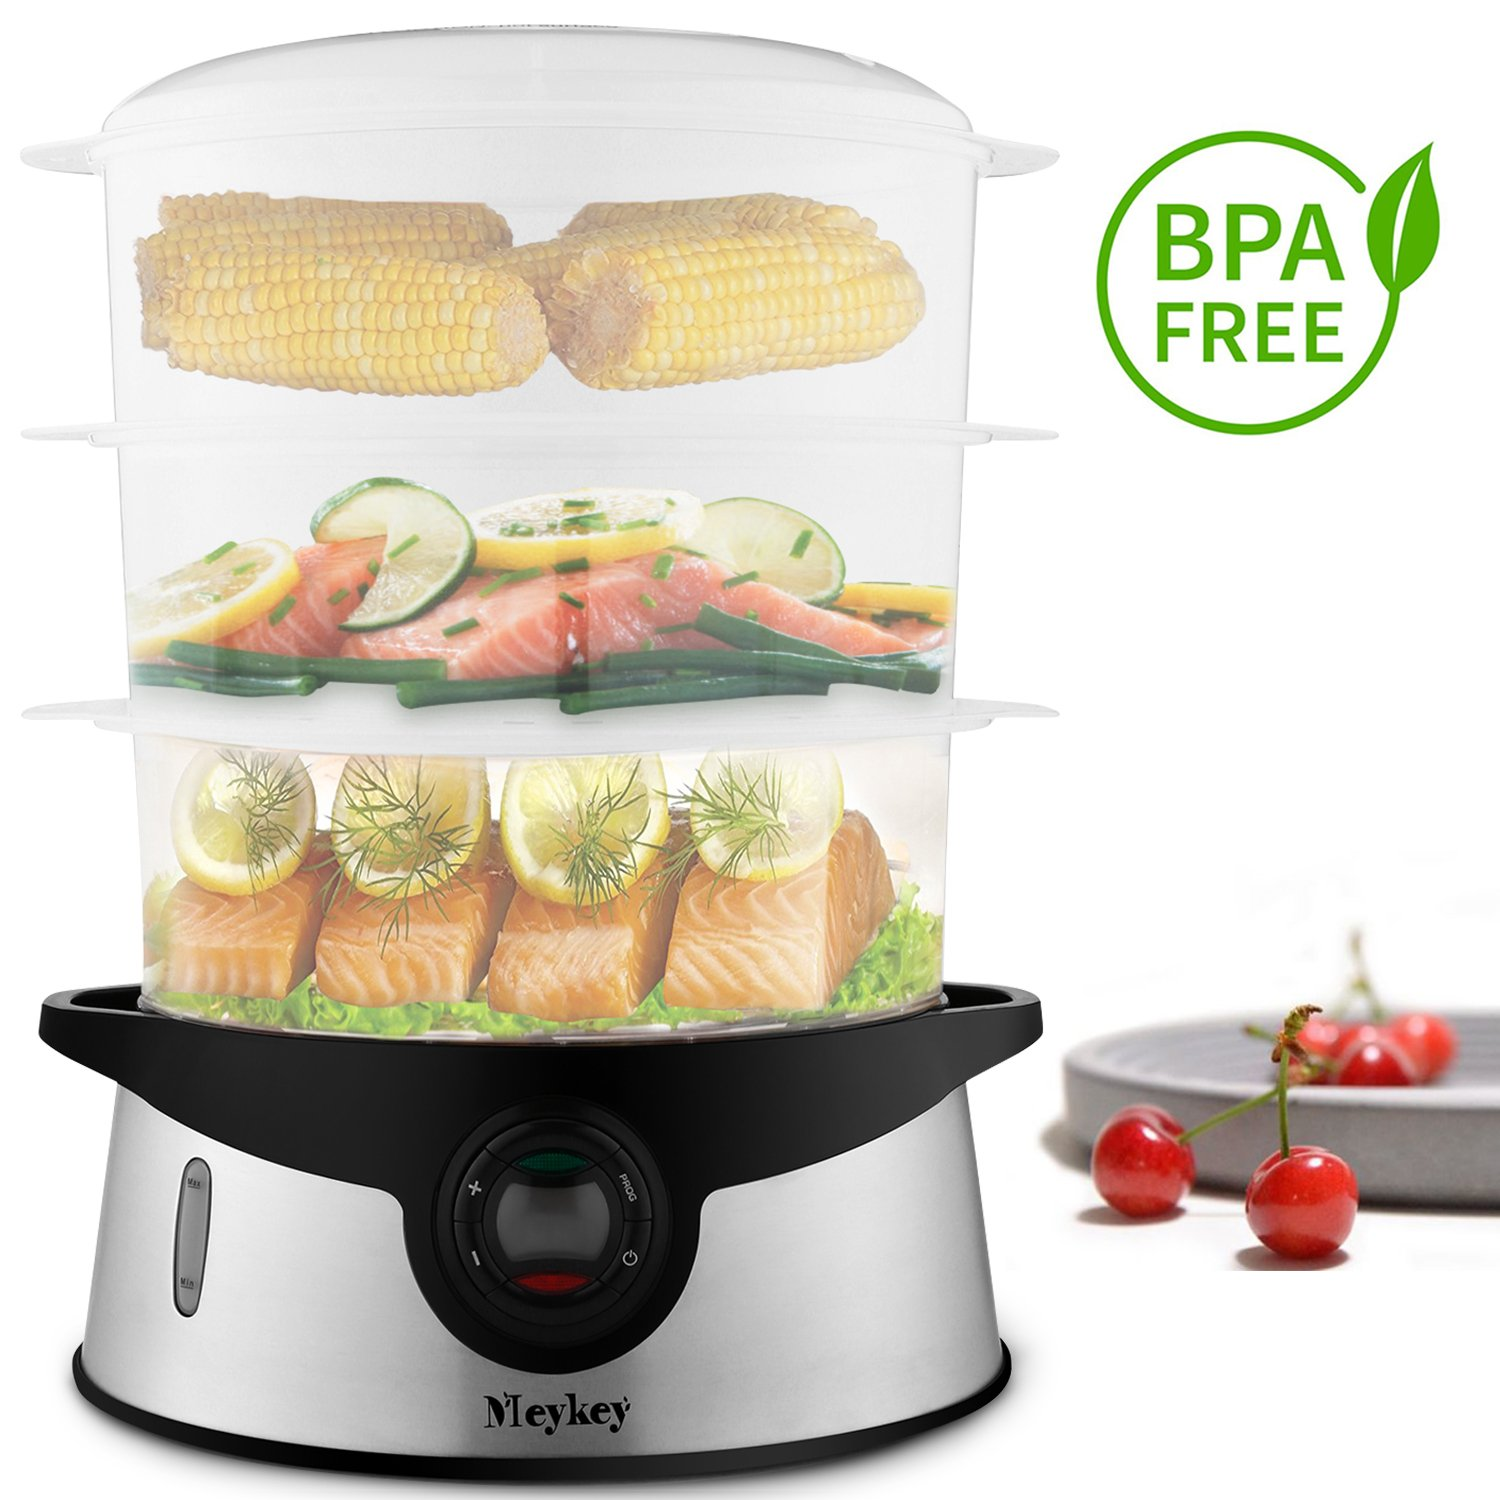 9.5 Quart Food Steamer BPA Free, Rendio 3 Tier Stackable Baskets Vegetable Steamer with Rice and Grains Tray, Electric Steamer 800W Fast Heat up (L)